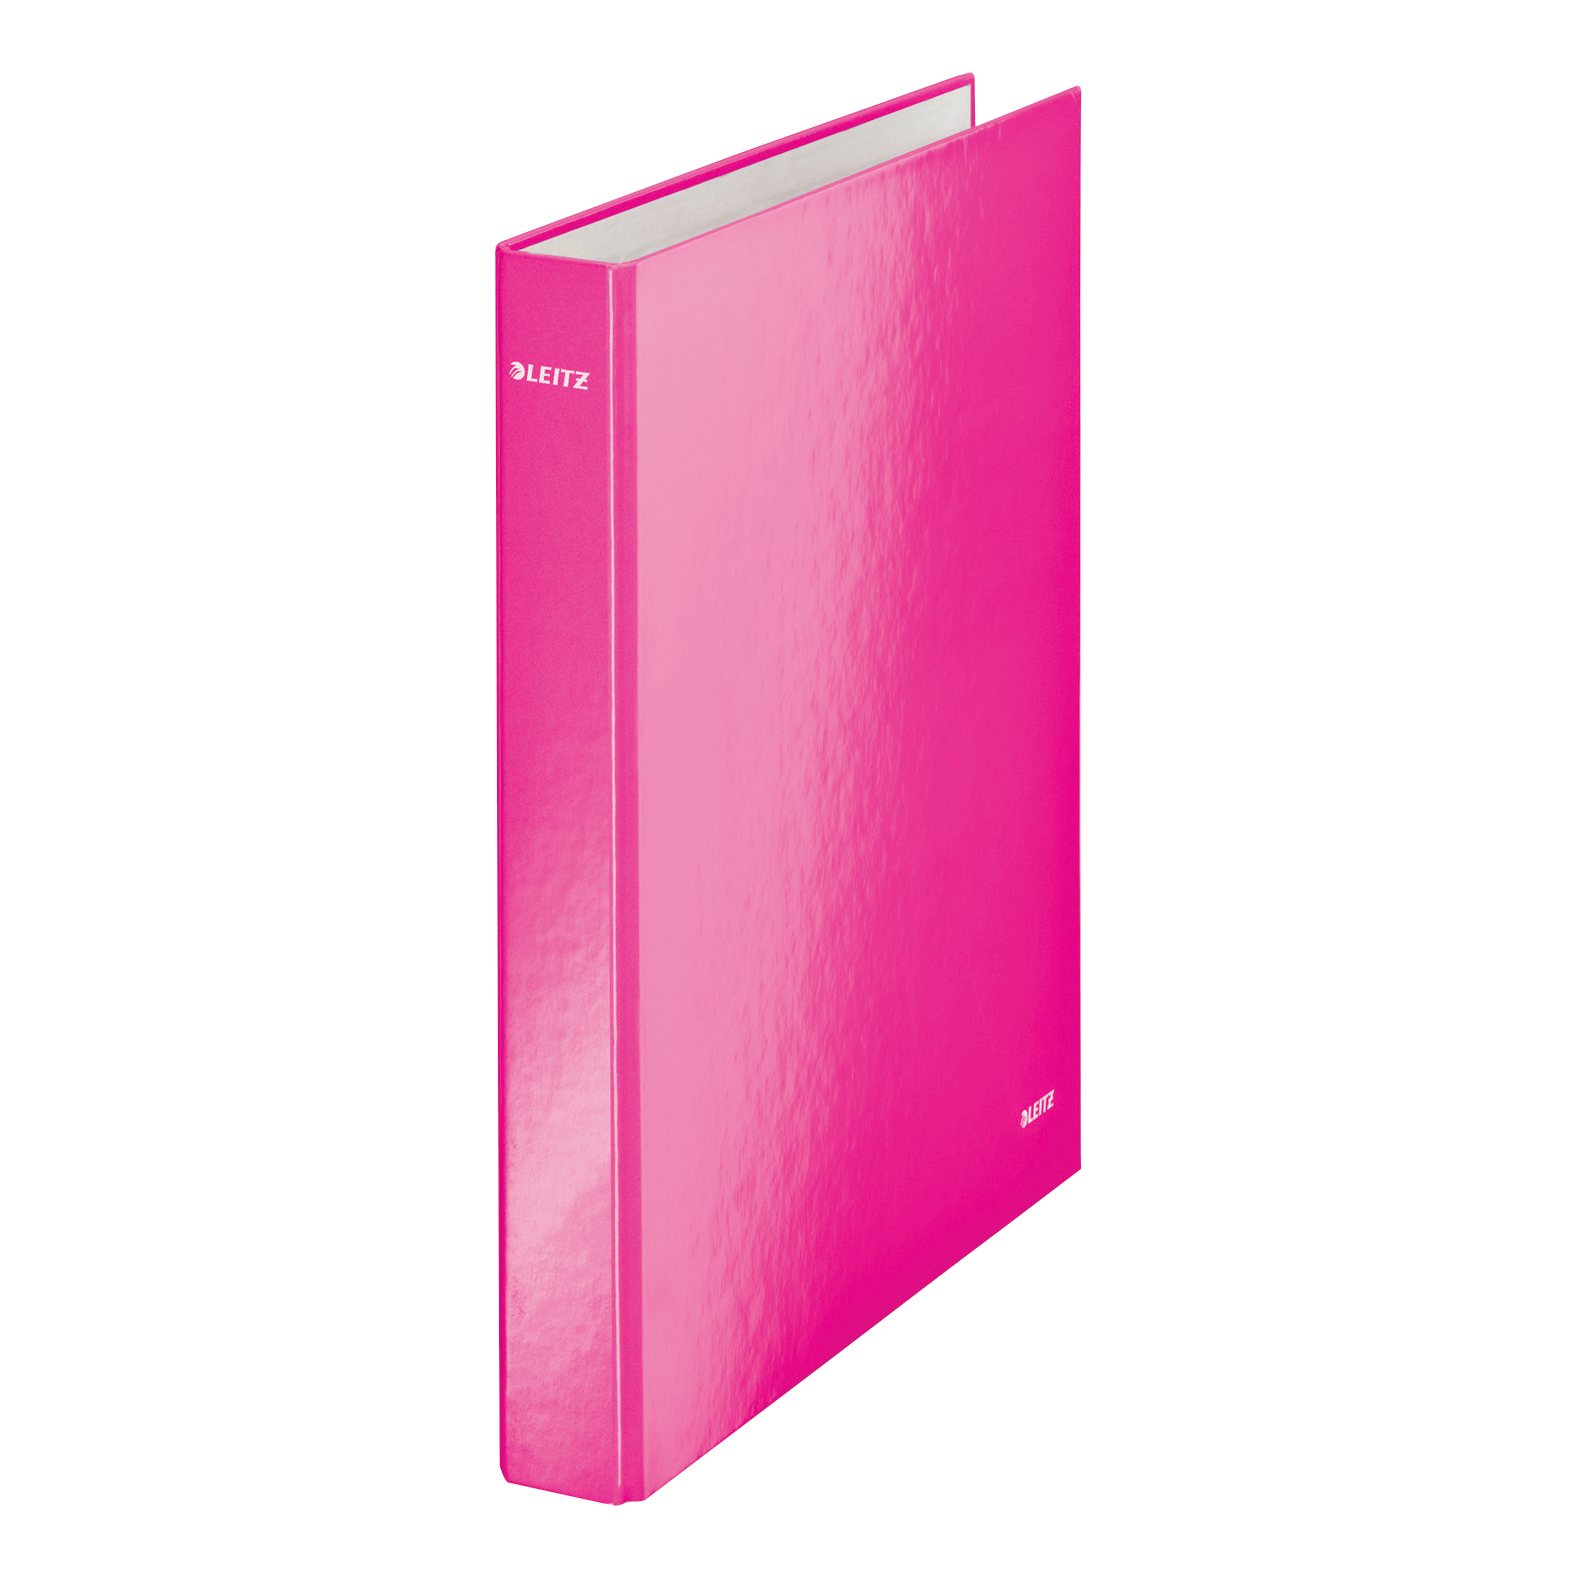 Leitz WOW Ring Binder 2 D-Ring 25mm Size A4 Pink Ref 42410023 Pack 10 COMPETITION